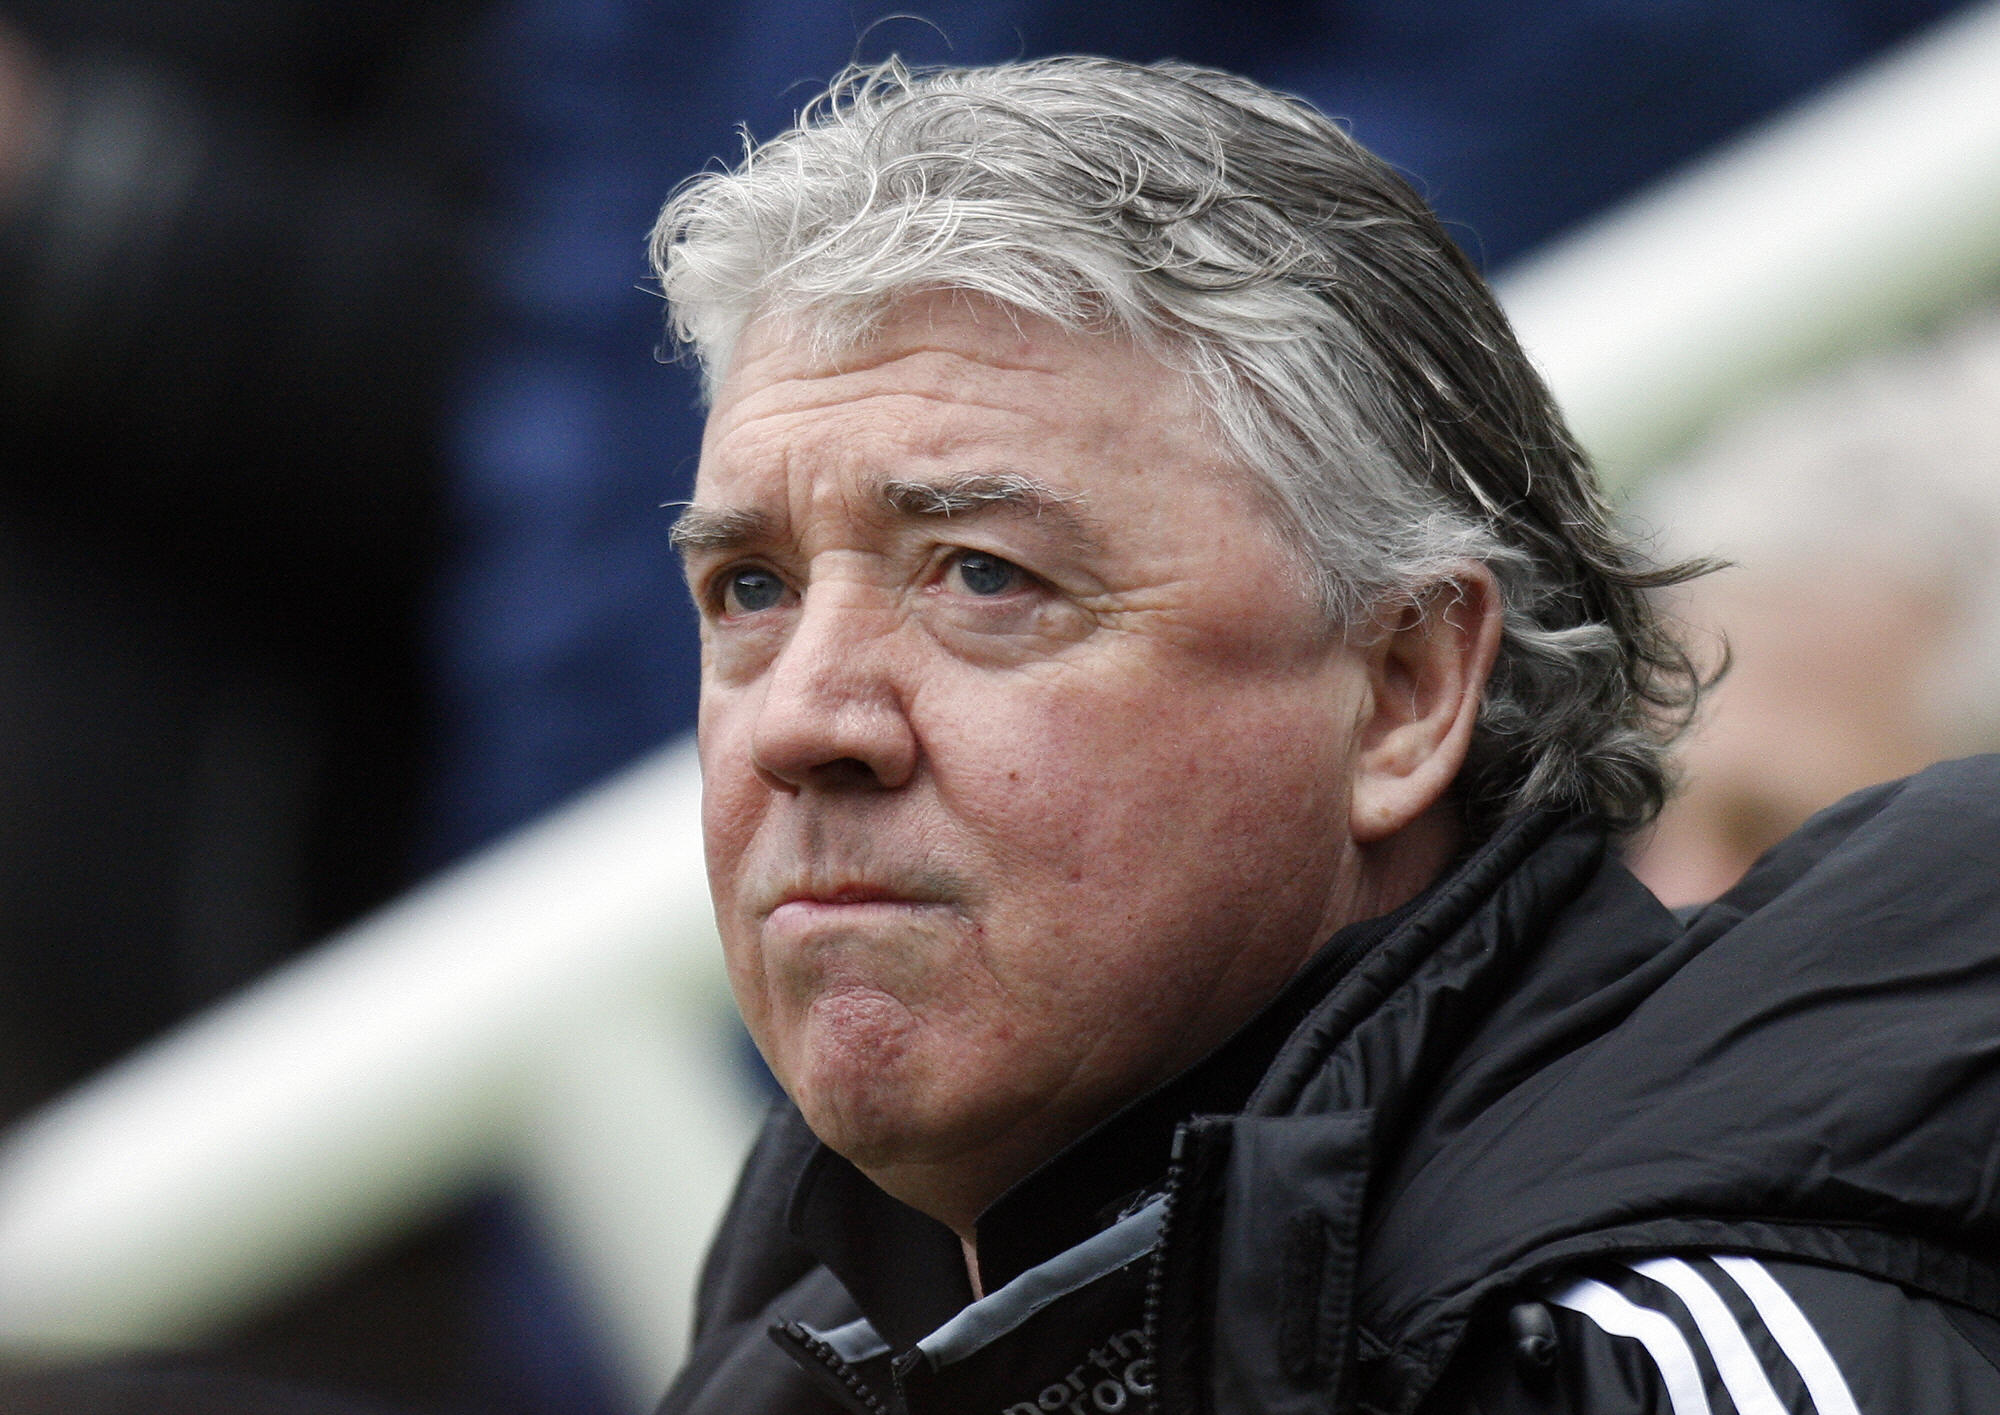 Old pals act: Joe Kinnear has appointed his trusted side-kick Mick Harford (Picture: AFP/Getty)